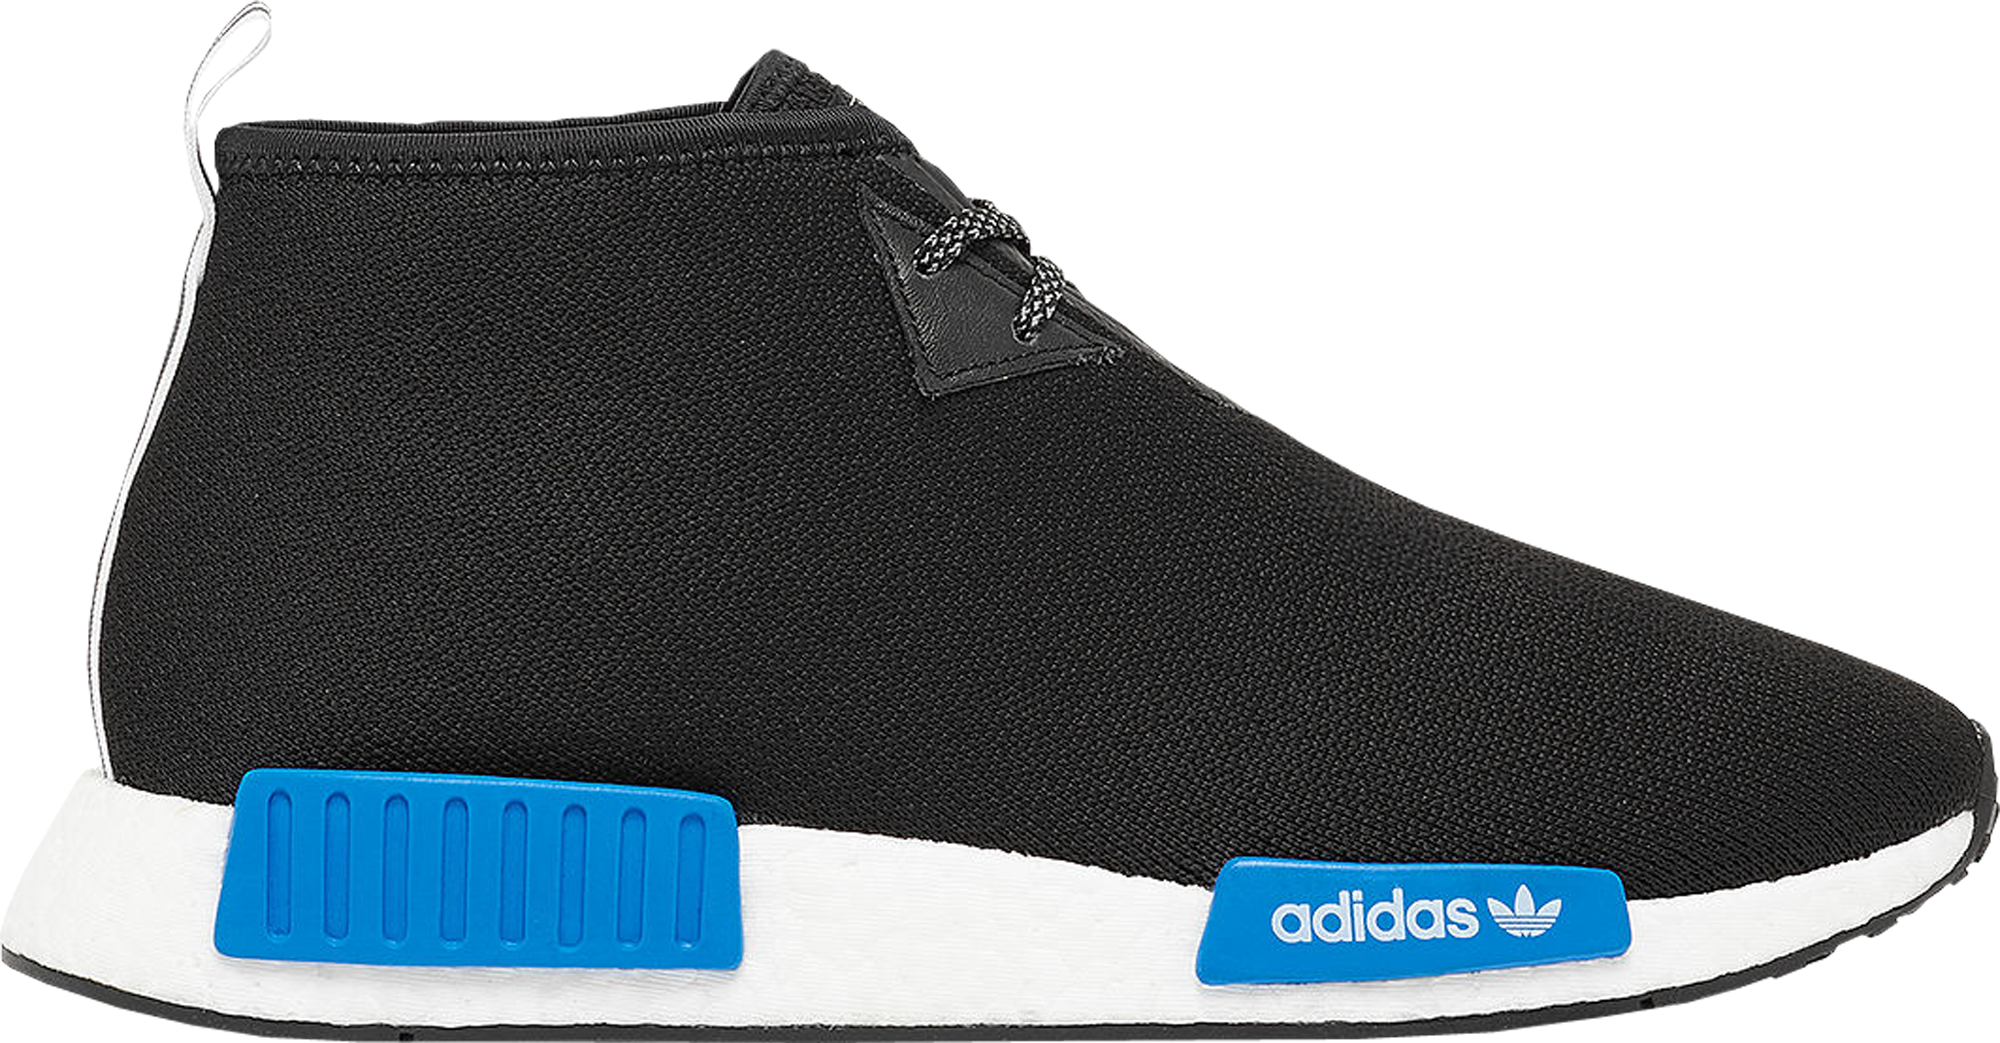 adidas Originals NMD C1 Trail Boot Boost (schwarz / braun) Free